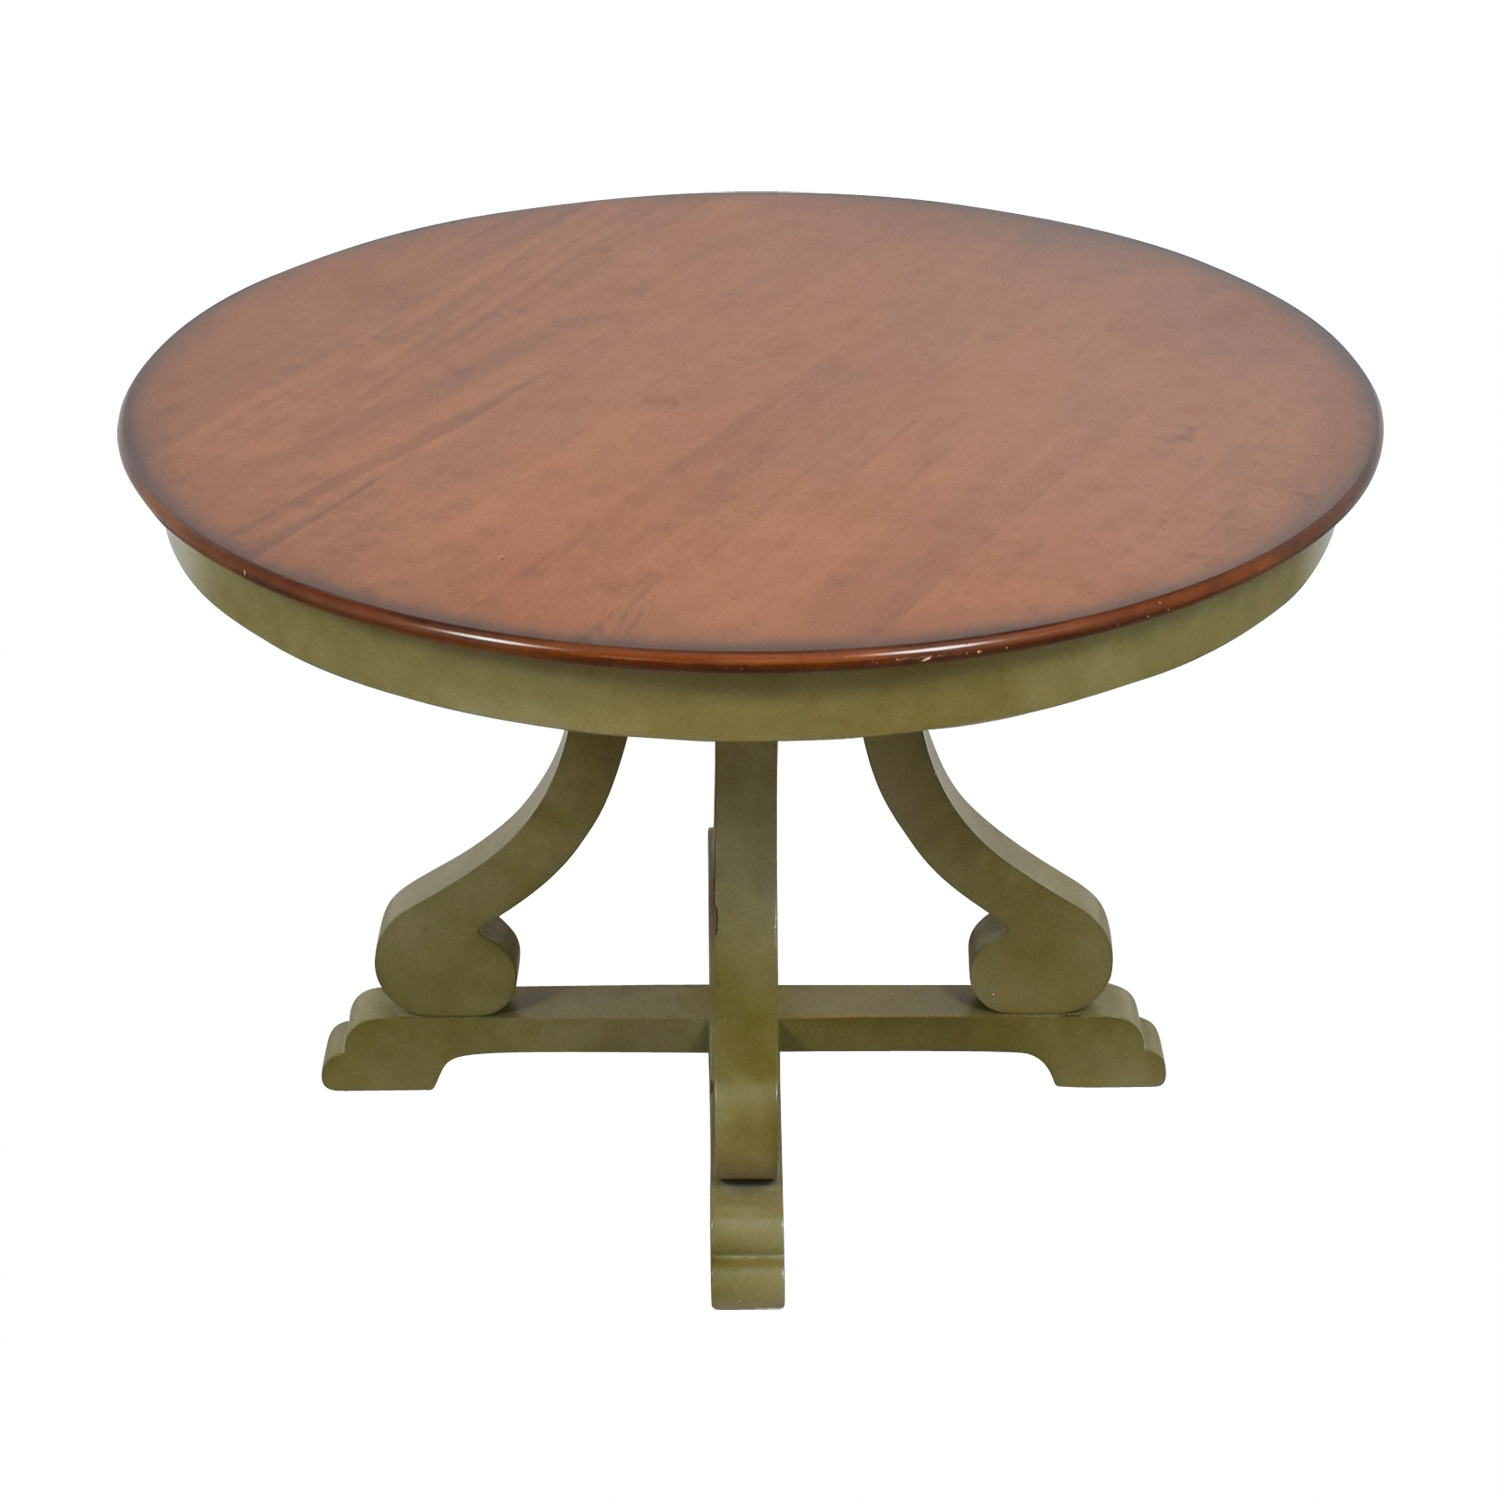 9 OFF   Pier 9 Pier 9 Imports Green and Wood Round Dining Table / Tables